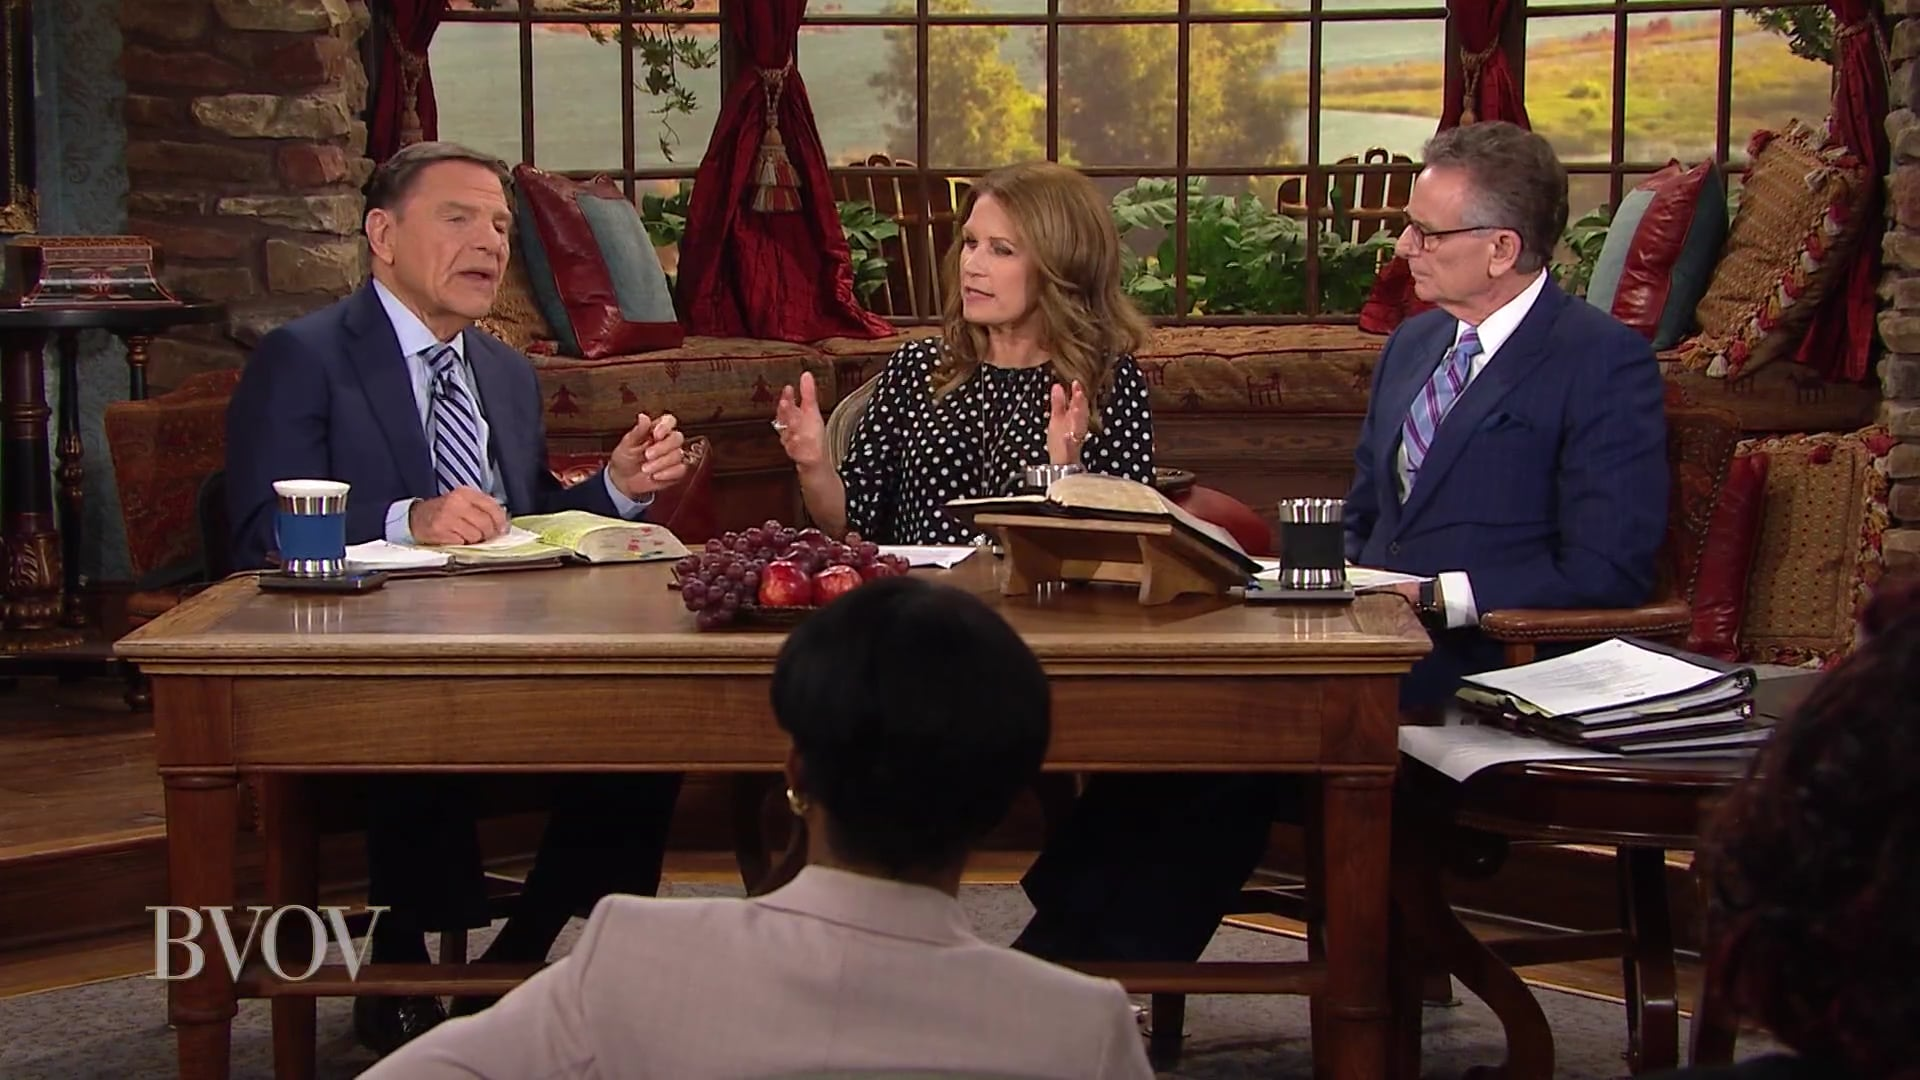 Watch Believer's Voice of Victory as Kenneth Copeland, Michele Bachmann and George Pearsons discuss the difference between putting America first and pursuing globalism. Learn the depth of the assault on America's core values via socialism, COVID-19 and globalism. Your vote in November can change the course of this nation!